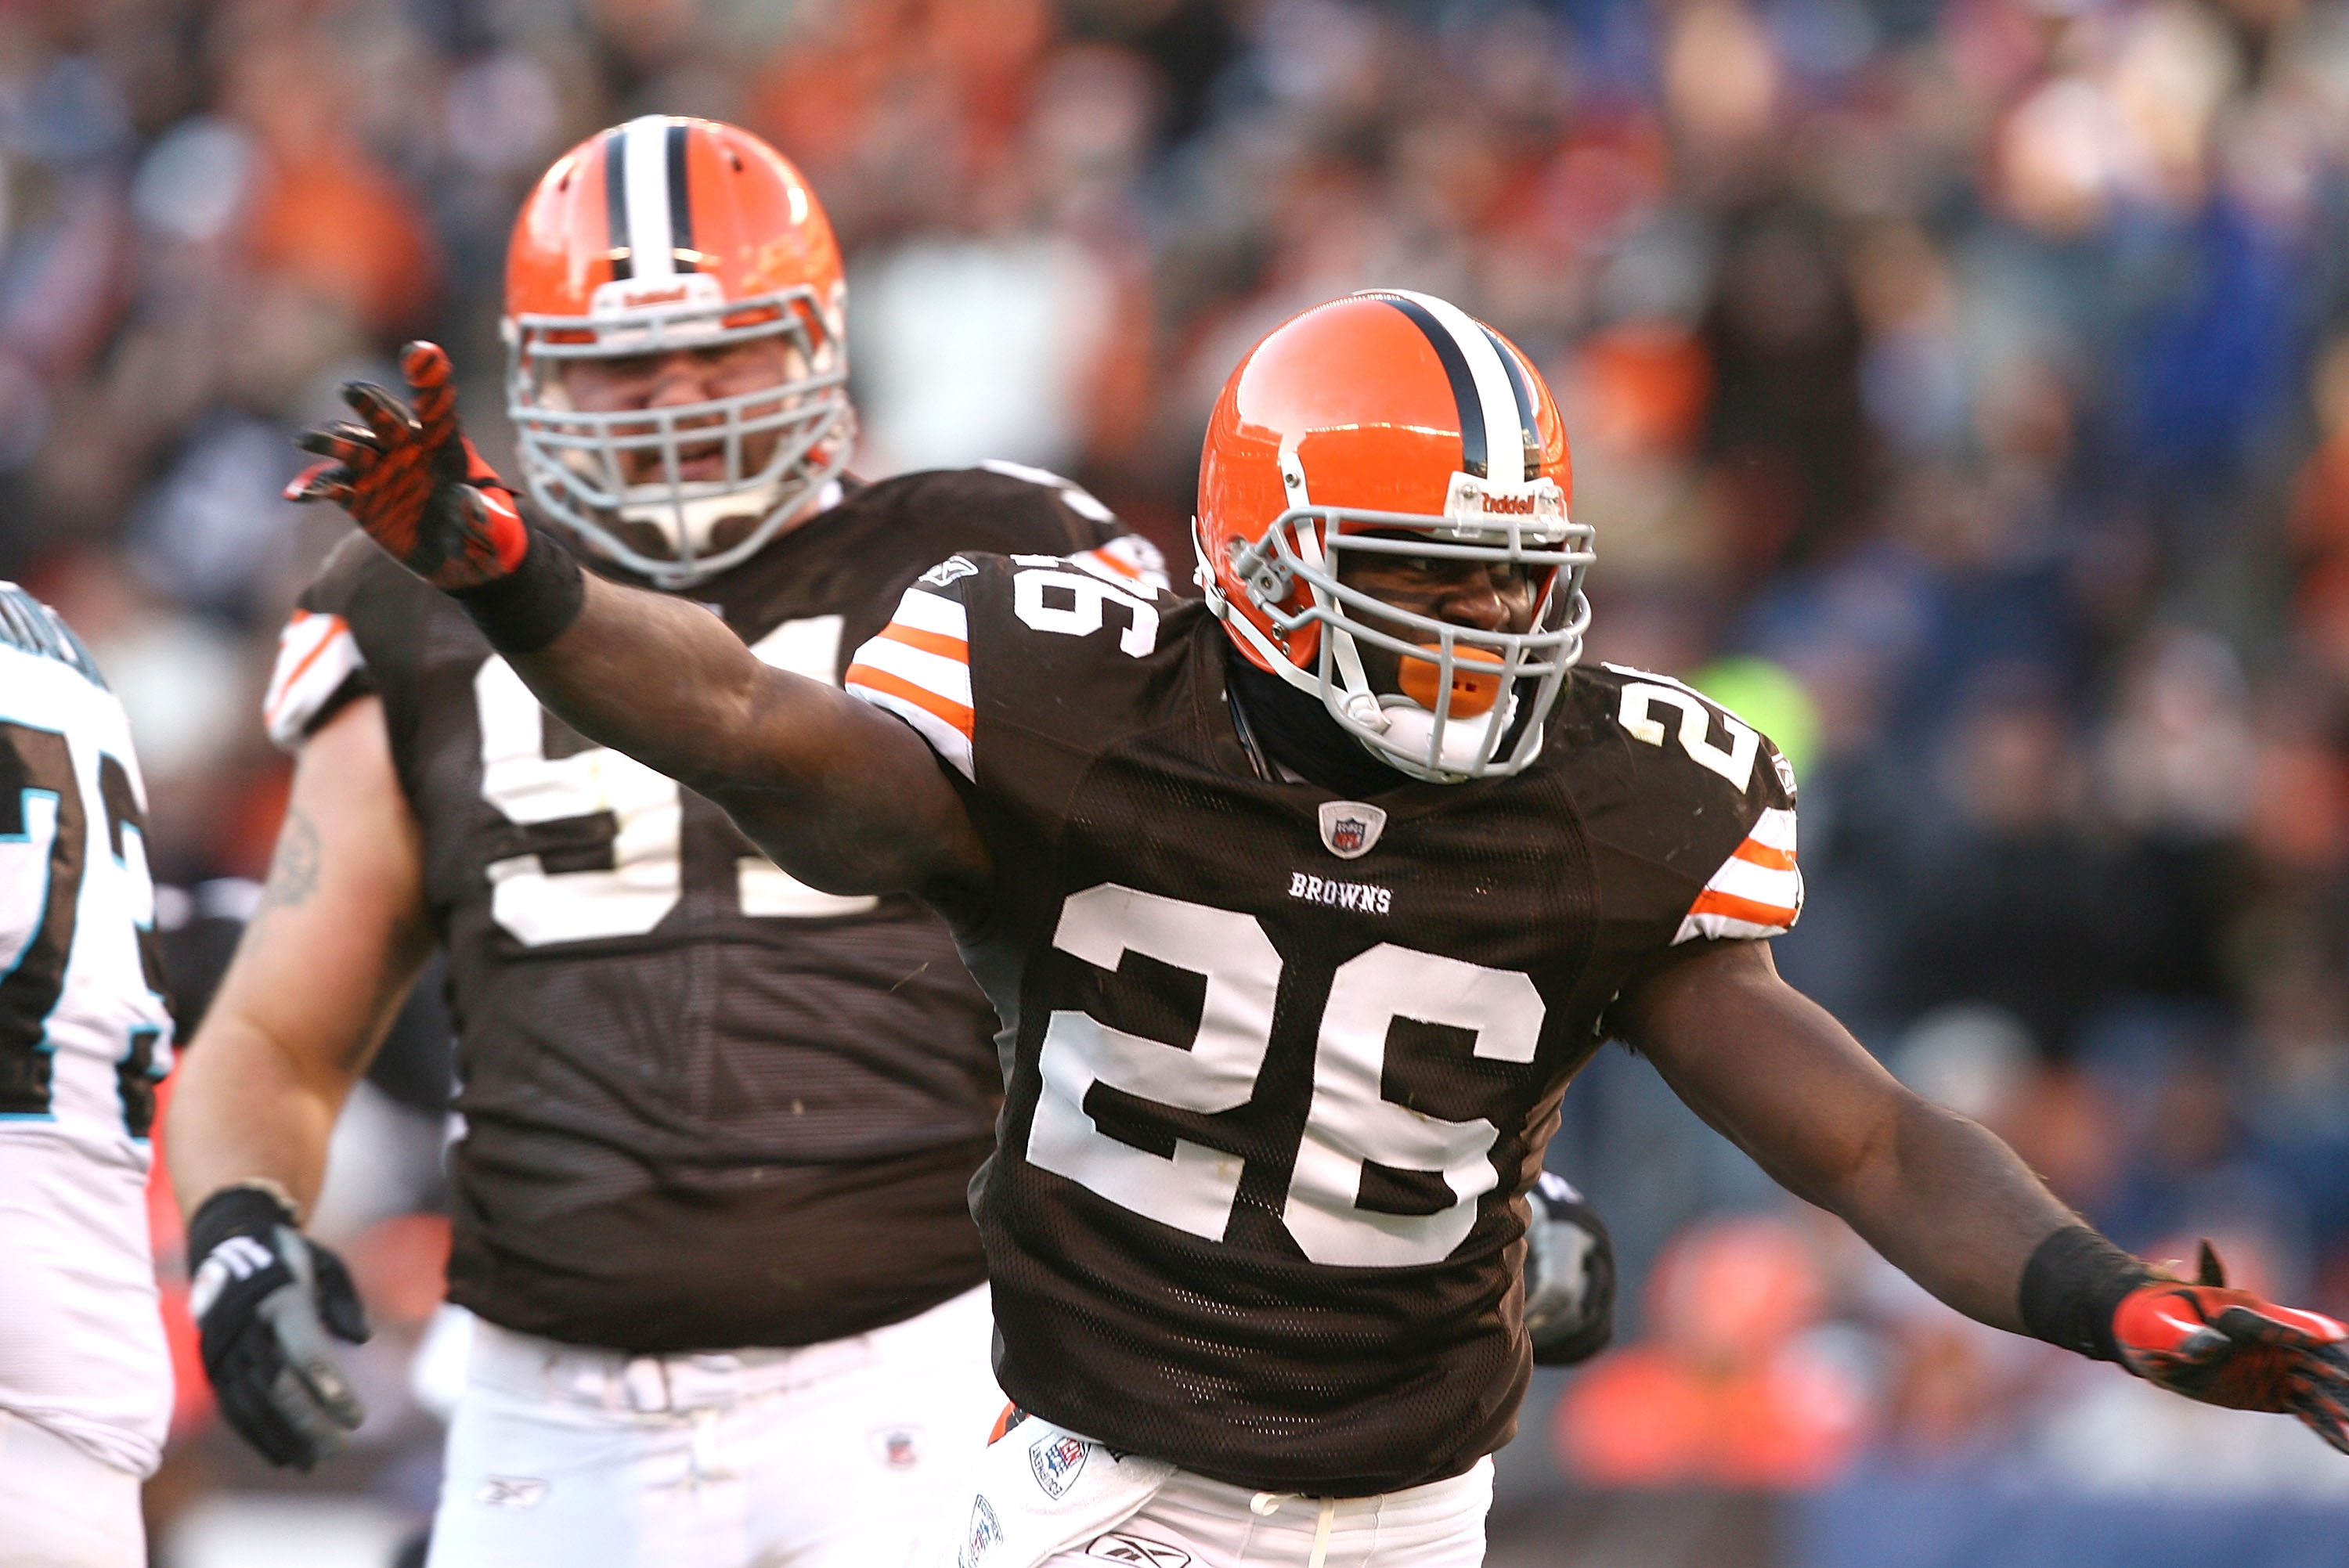 CLEVELAND - NOVEMBER 28:  Defensive players Abram Elam #26 and Brian Schaefering #91 of the Cleveland Browns celebrate after their game against the Carolina Panthers at Cleveland Browns Stadium on November 28, 2010 in Cleveland, Ohio.  (Photo by Matt Sull